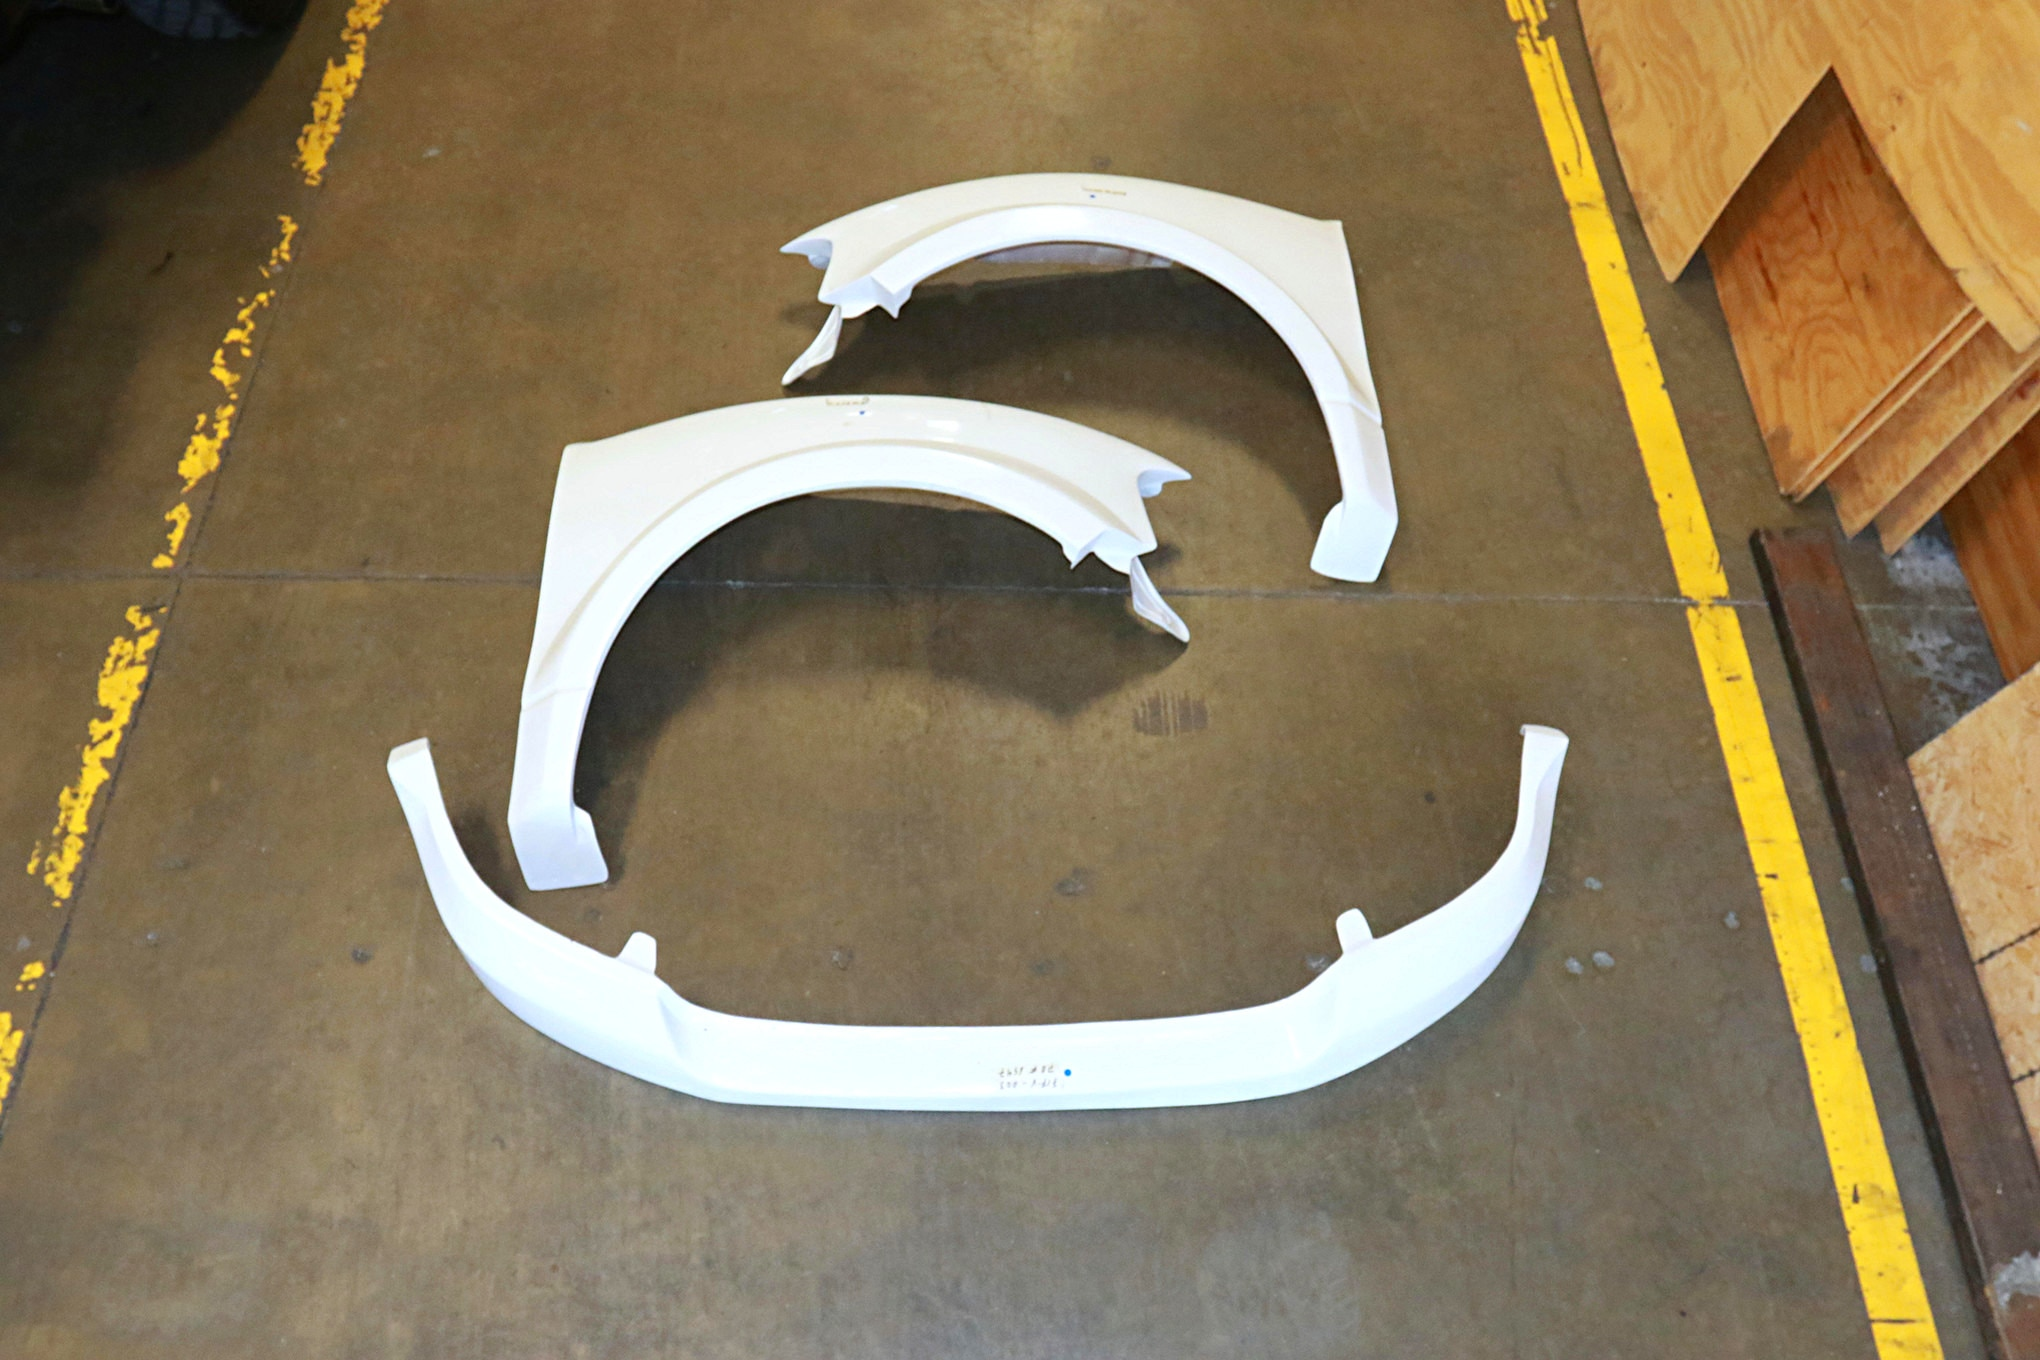 The Fiberwerx fiberglass fenders and lower valance are just one of many kits and pieces that Fiberwerx makes. Their workmanship is very good, and the parts fit well right out of the buck.